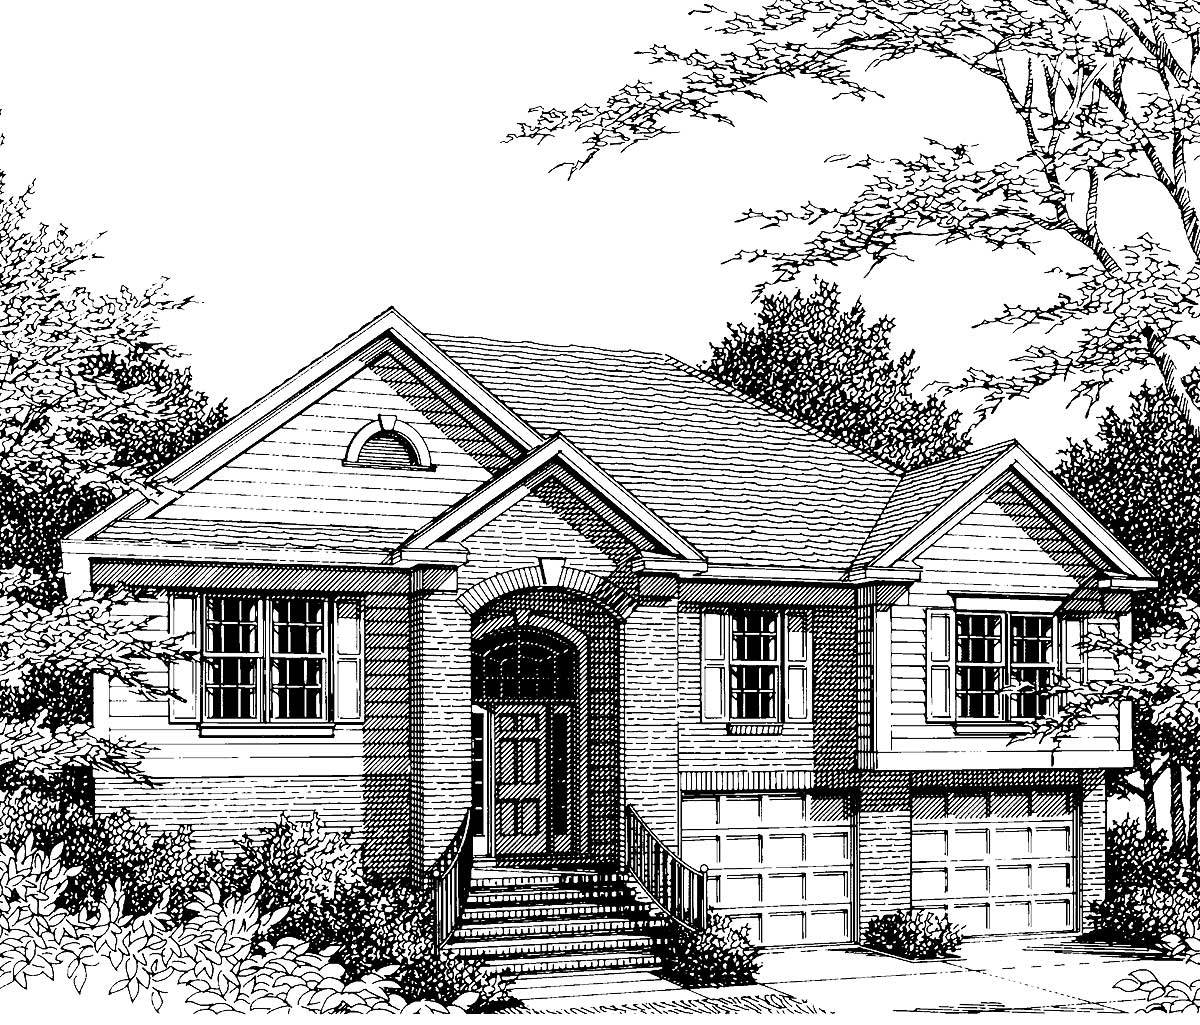 Large Split Foyer House Plans : Split foyer design vs st floor master suite